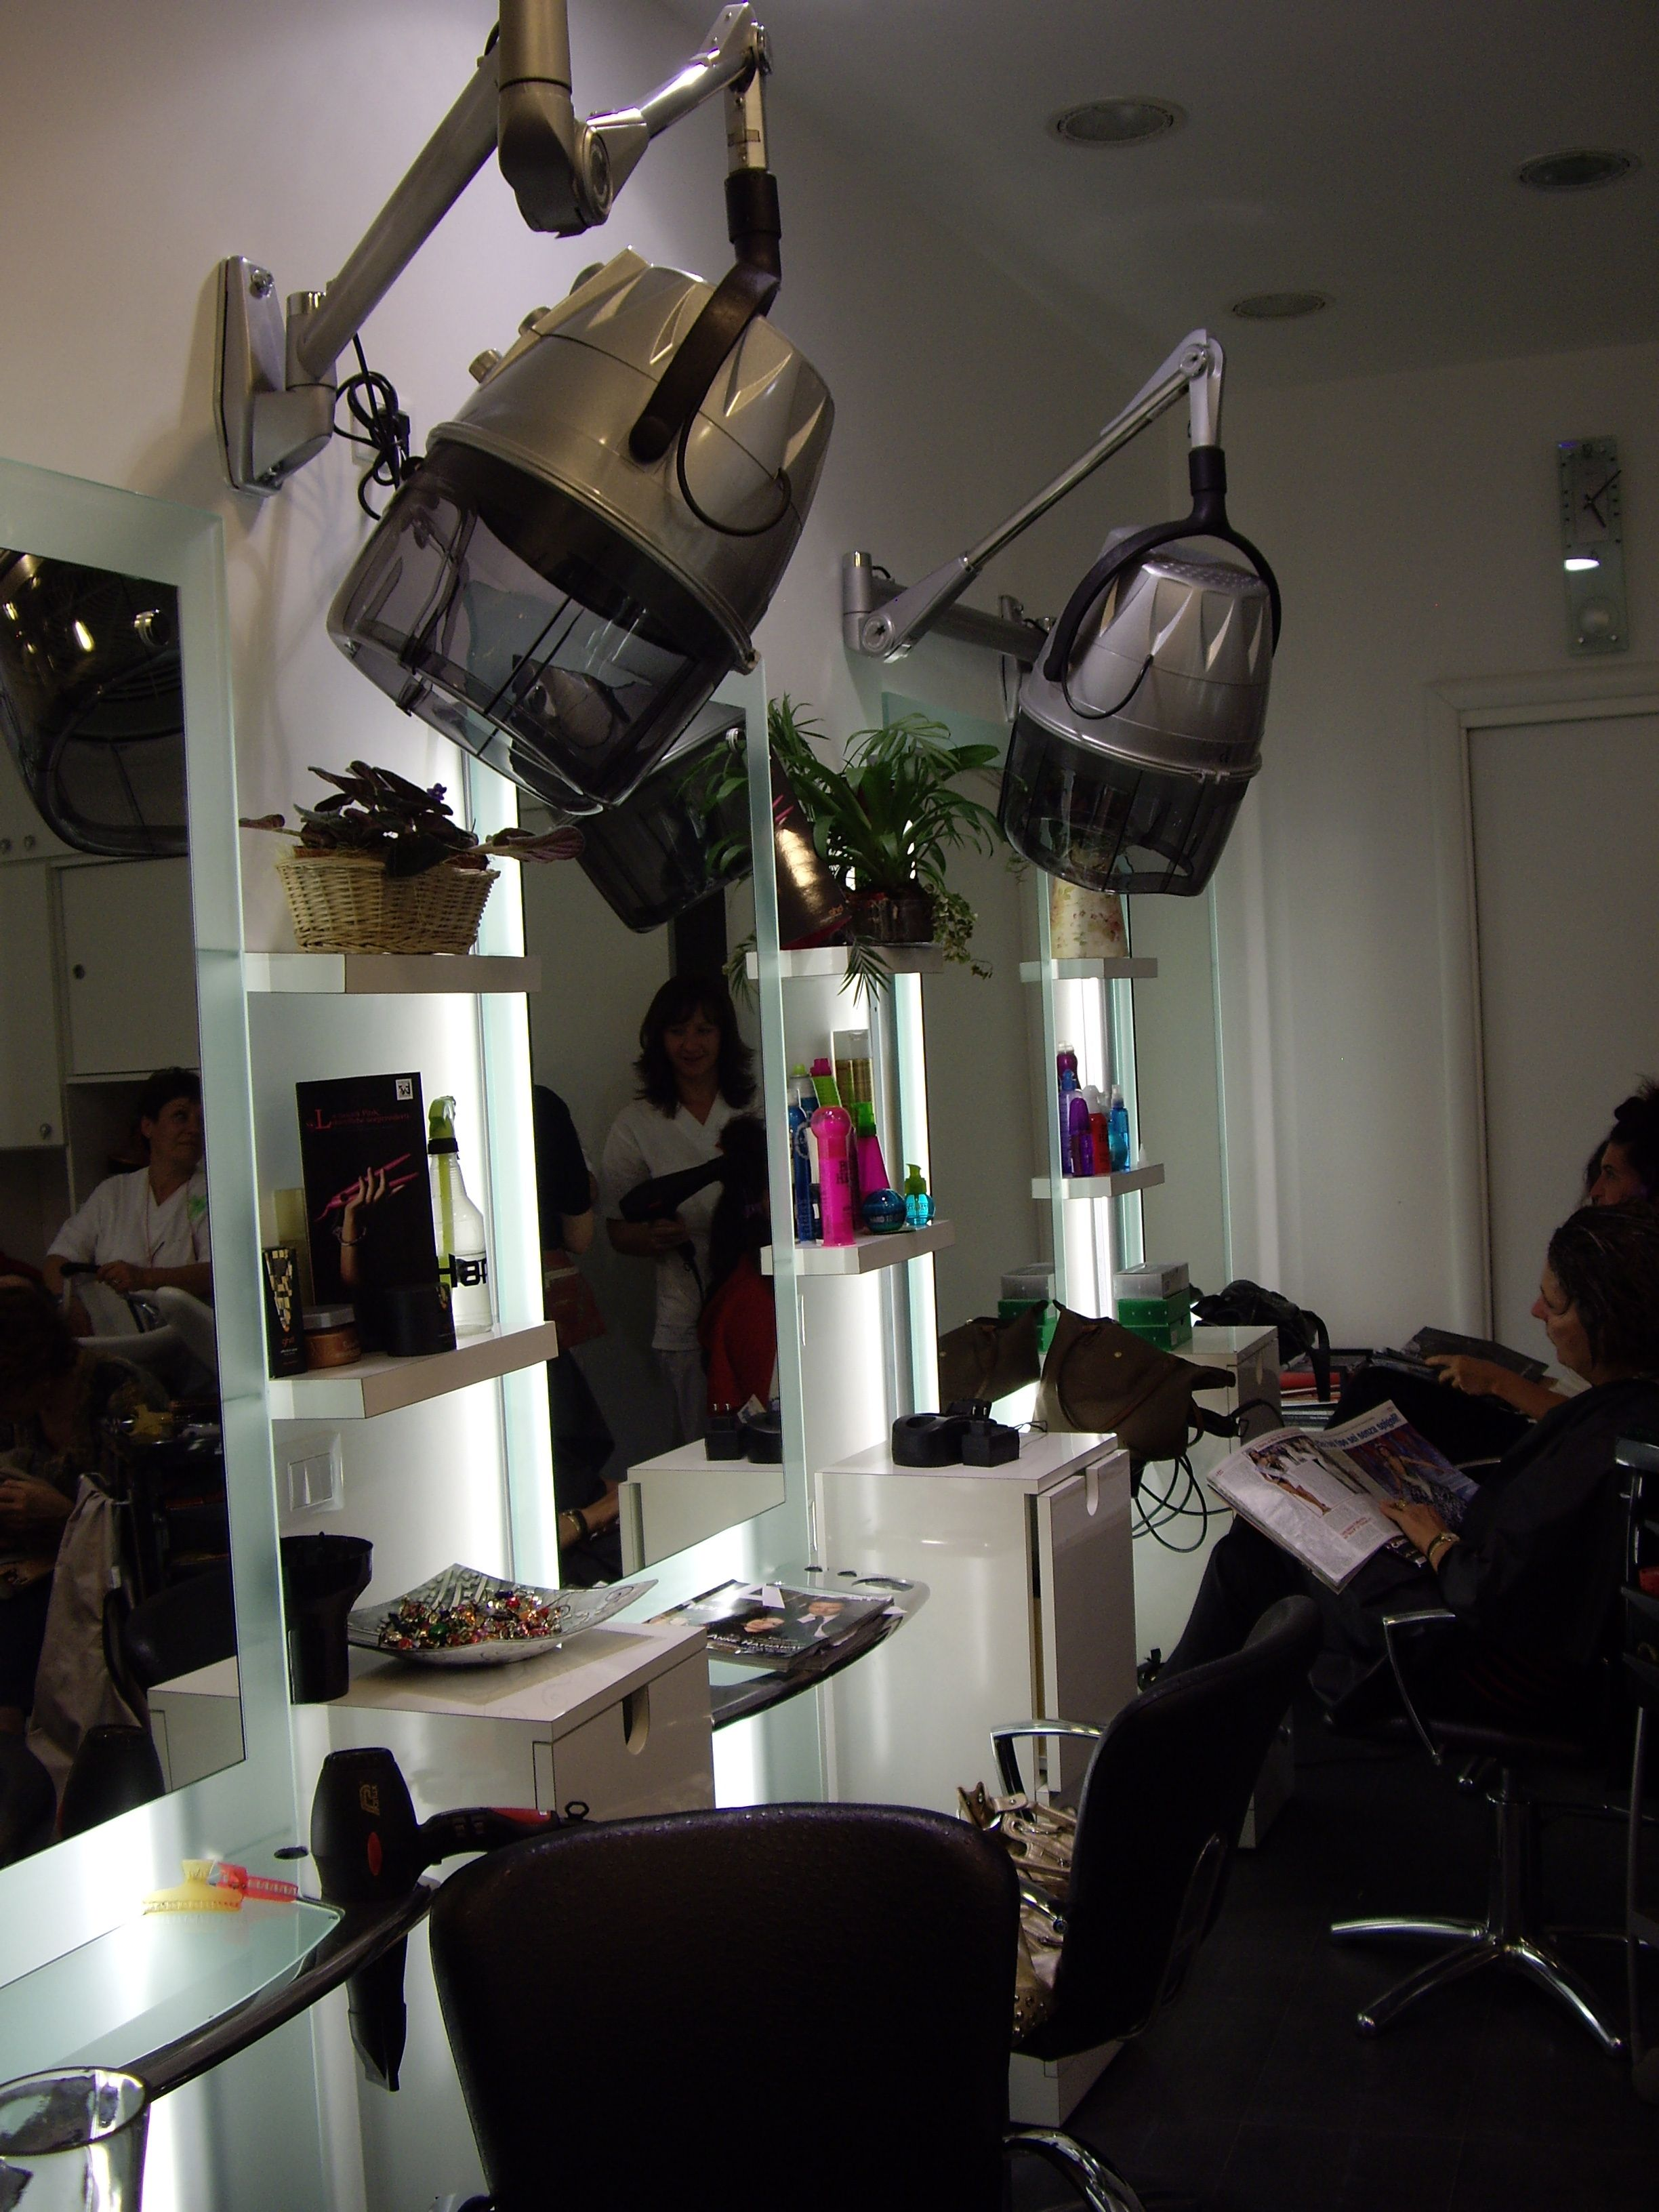 Inside Salon Rome Italy Dryers Mounted On Wall At Each